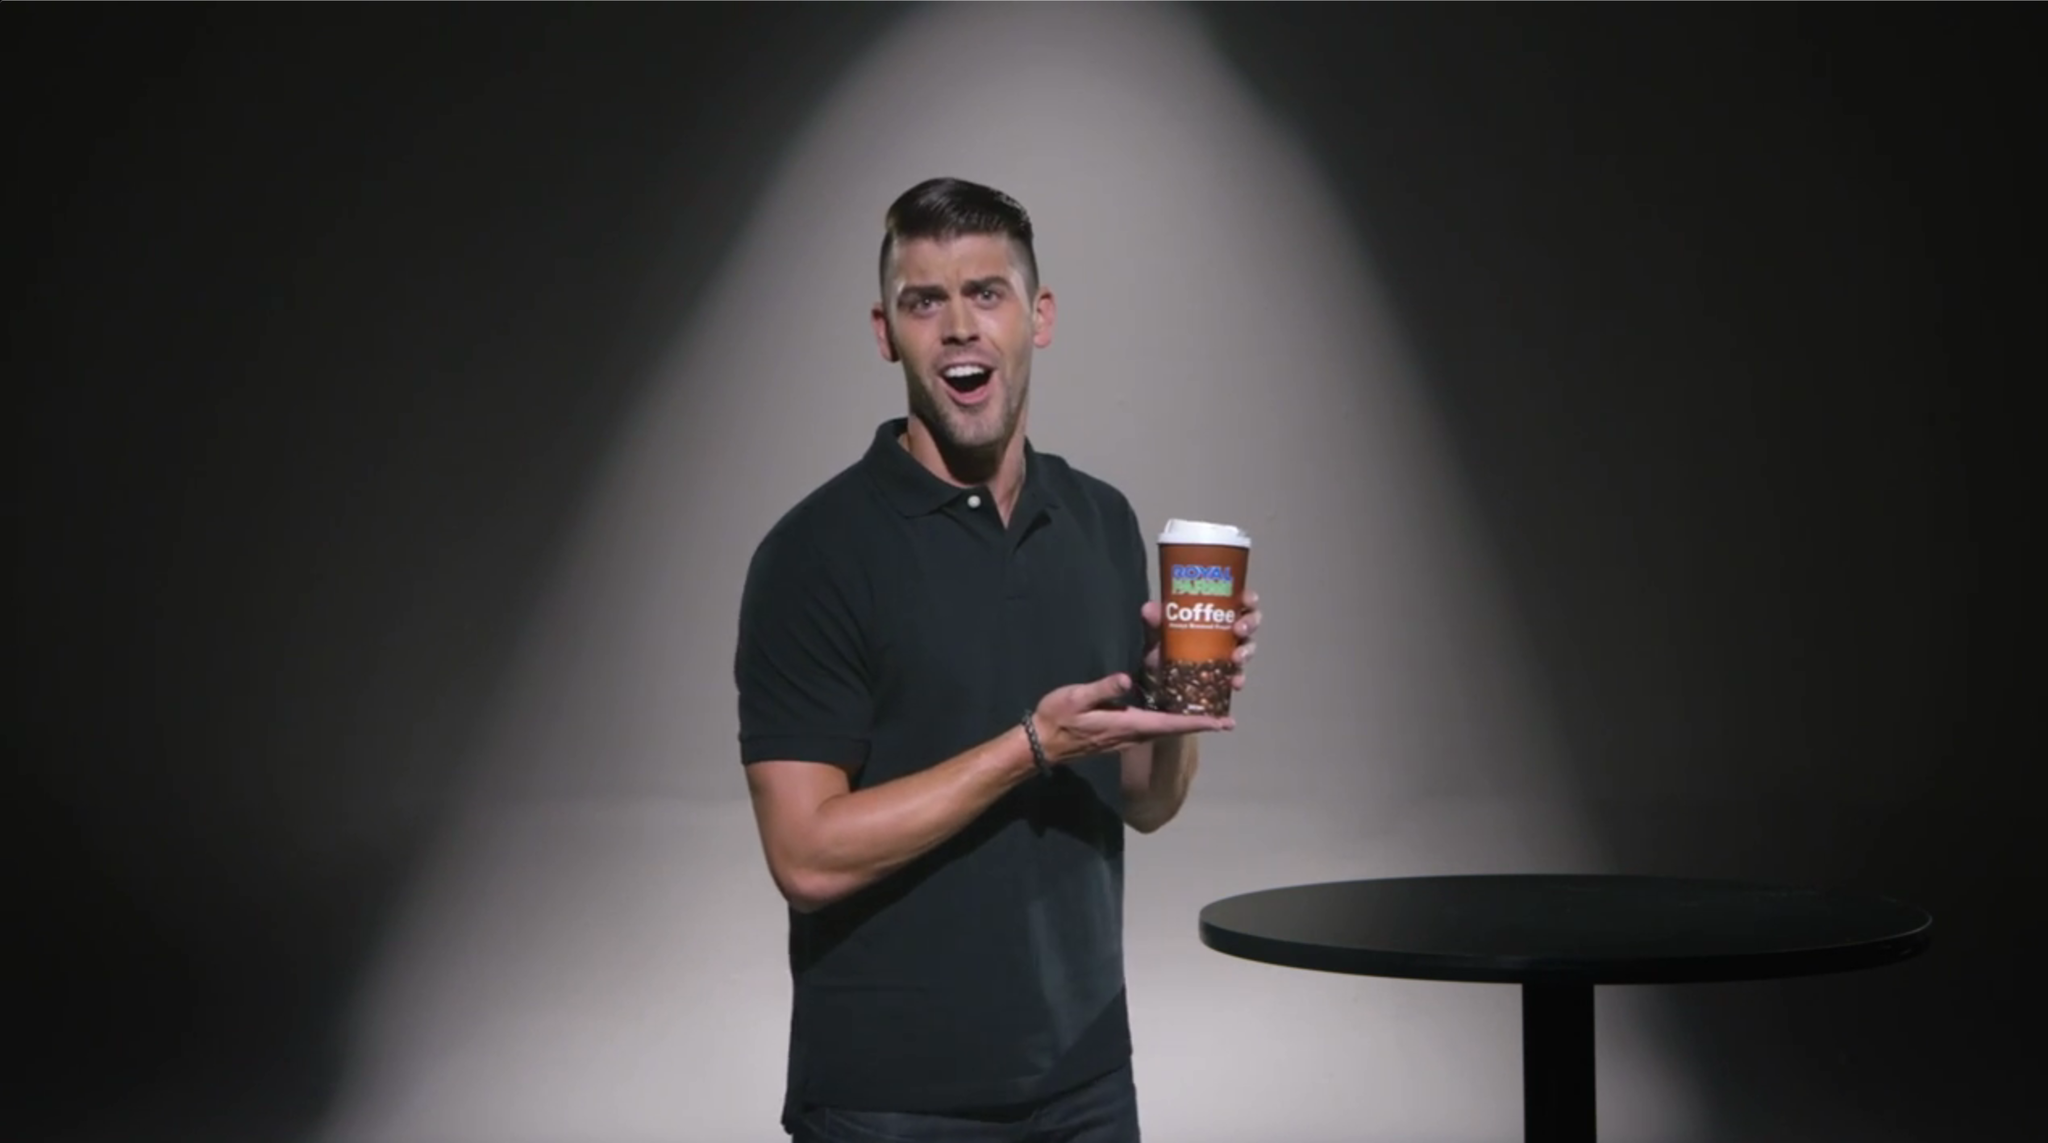 2748f8cfe Ravens kicker Justin Tucker sings opera about Royal Farms coffee -  Baltimore Sun